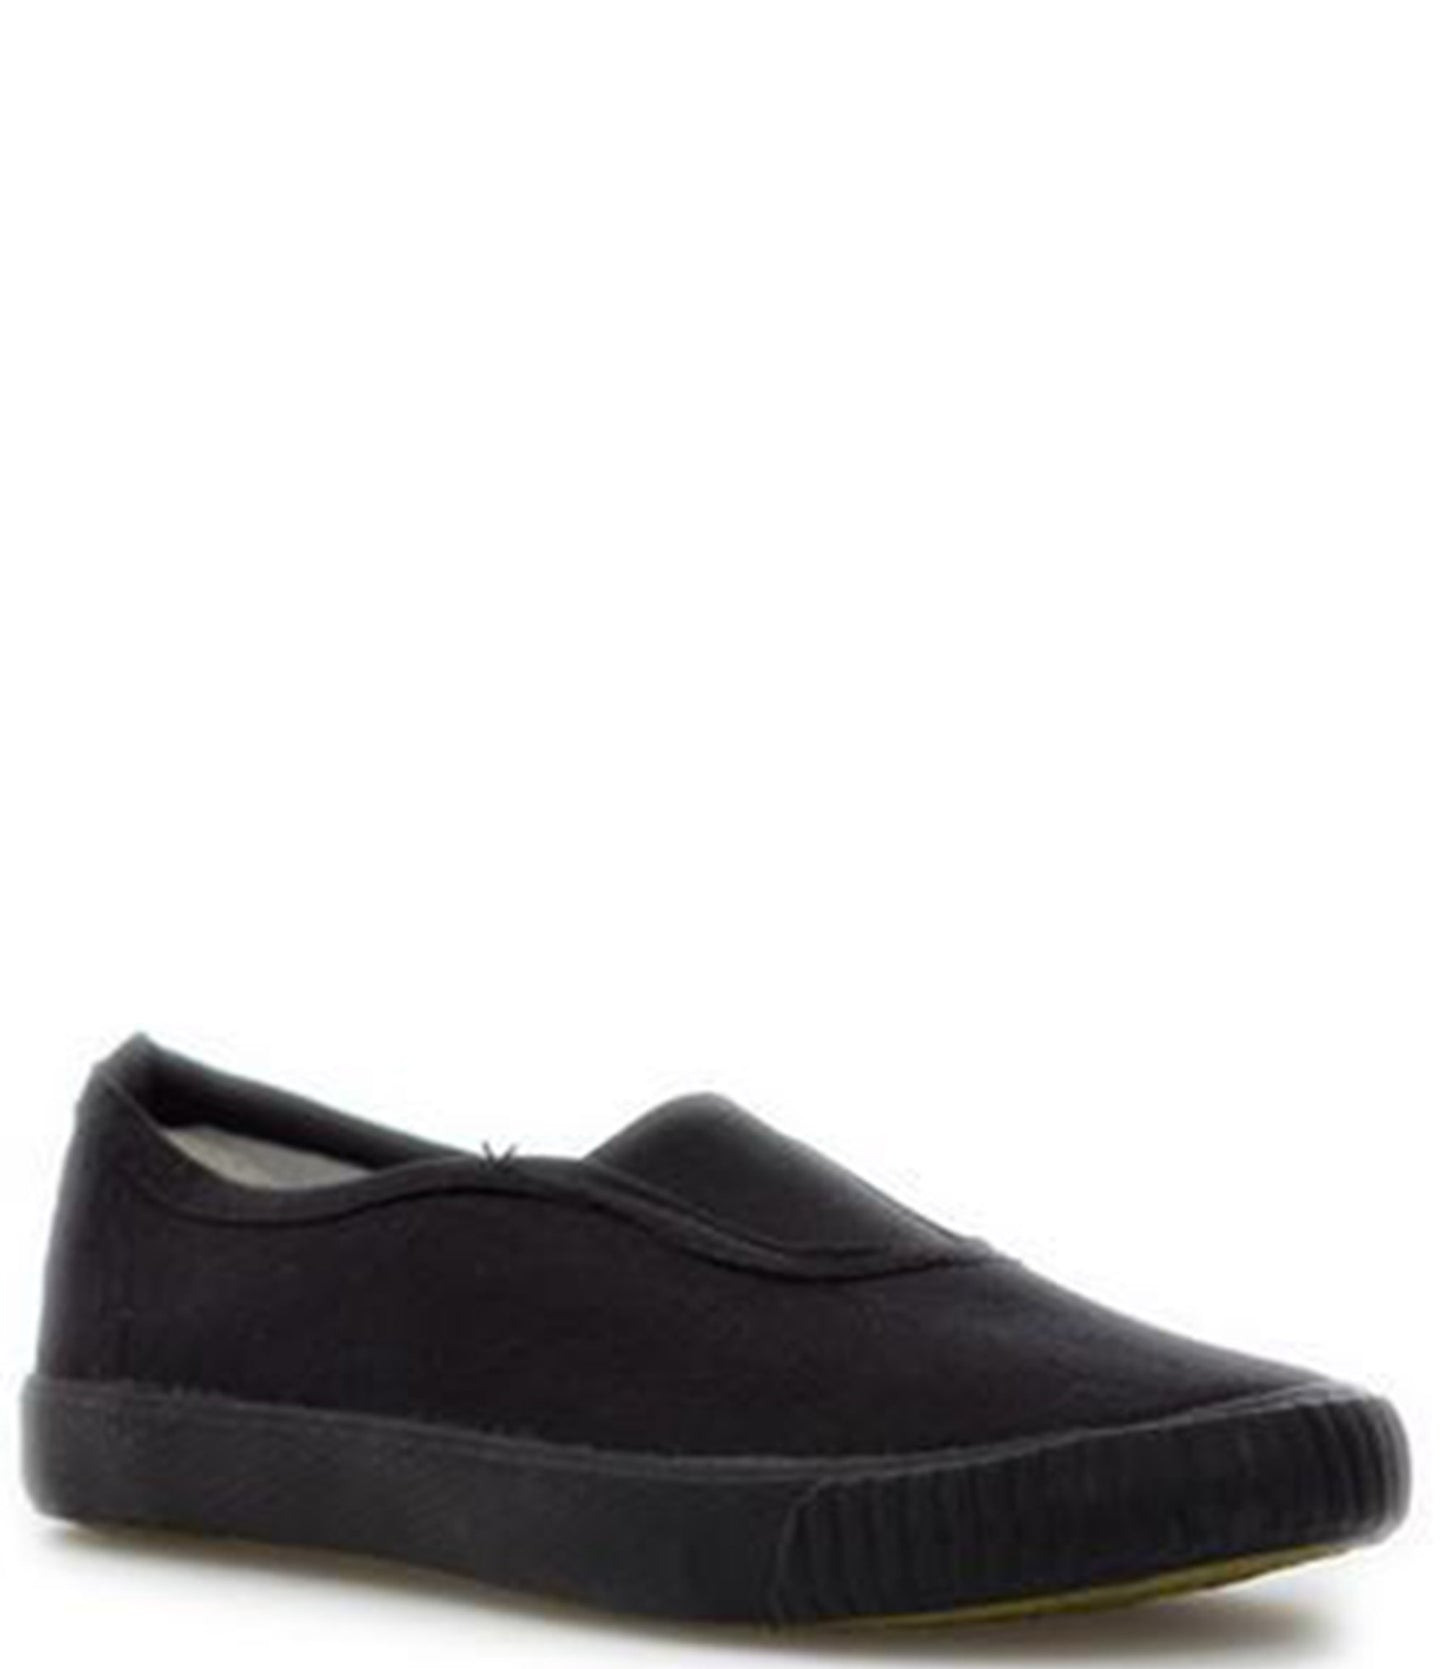 Boys / Girls Slip on Gusset PE Pumps